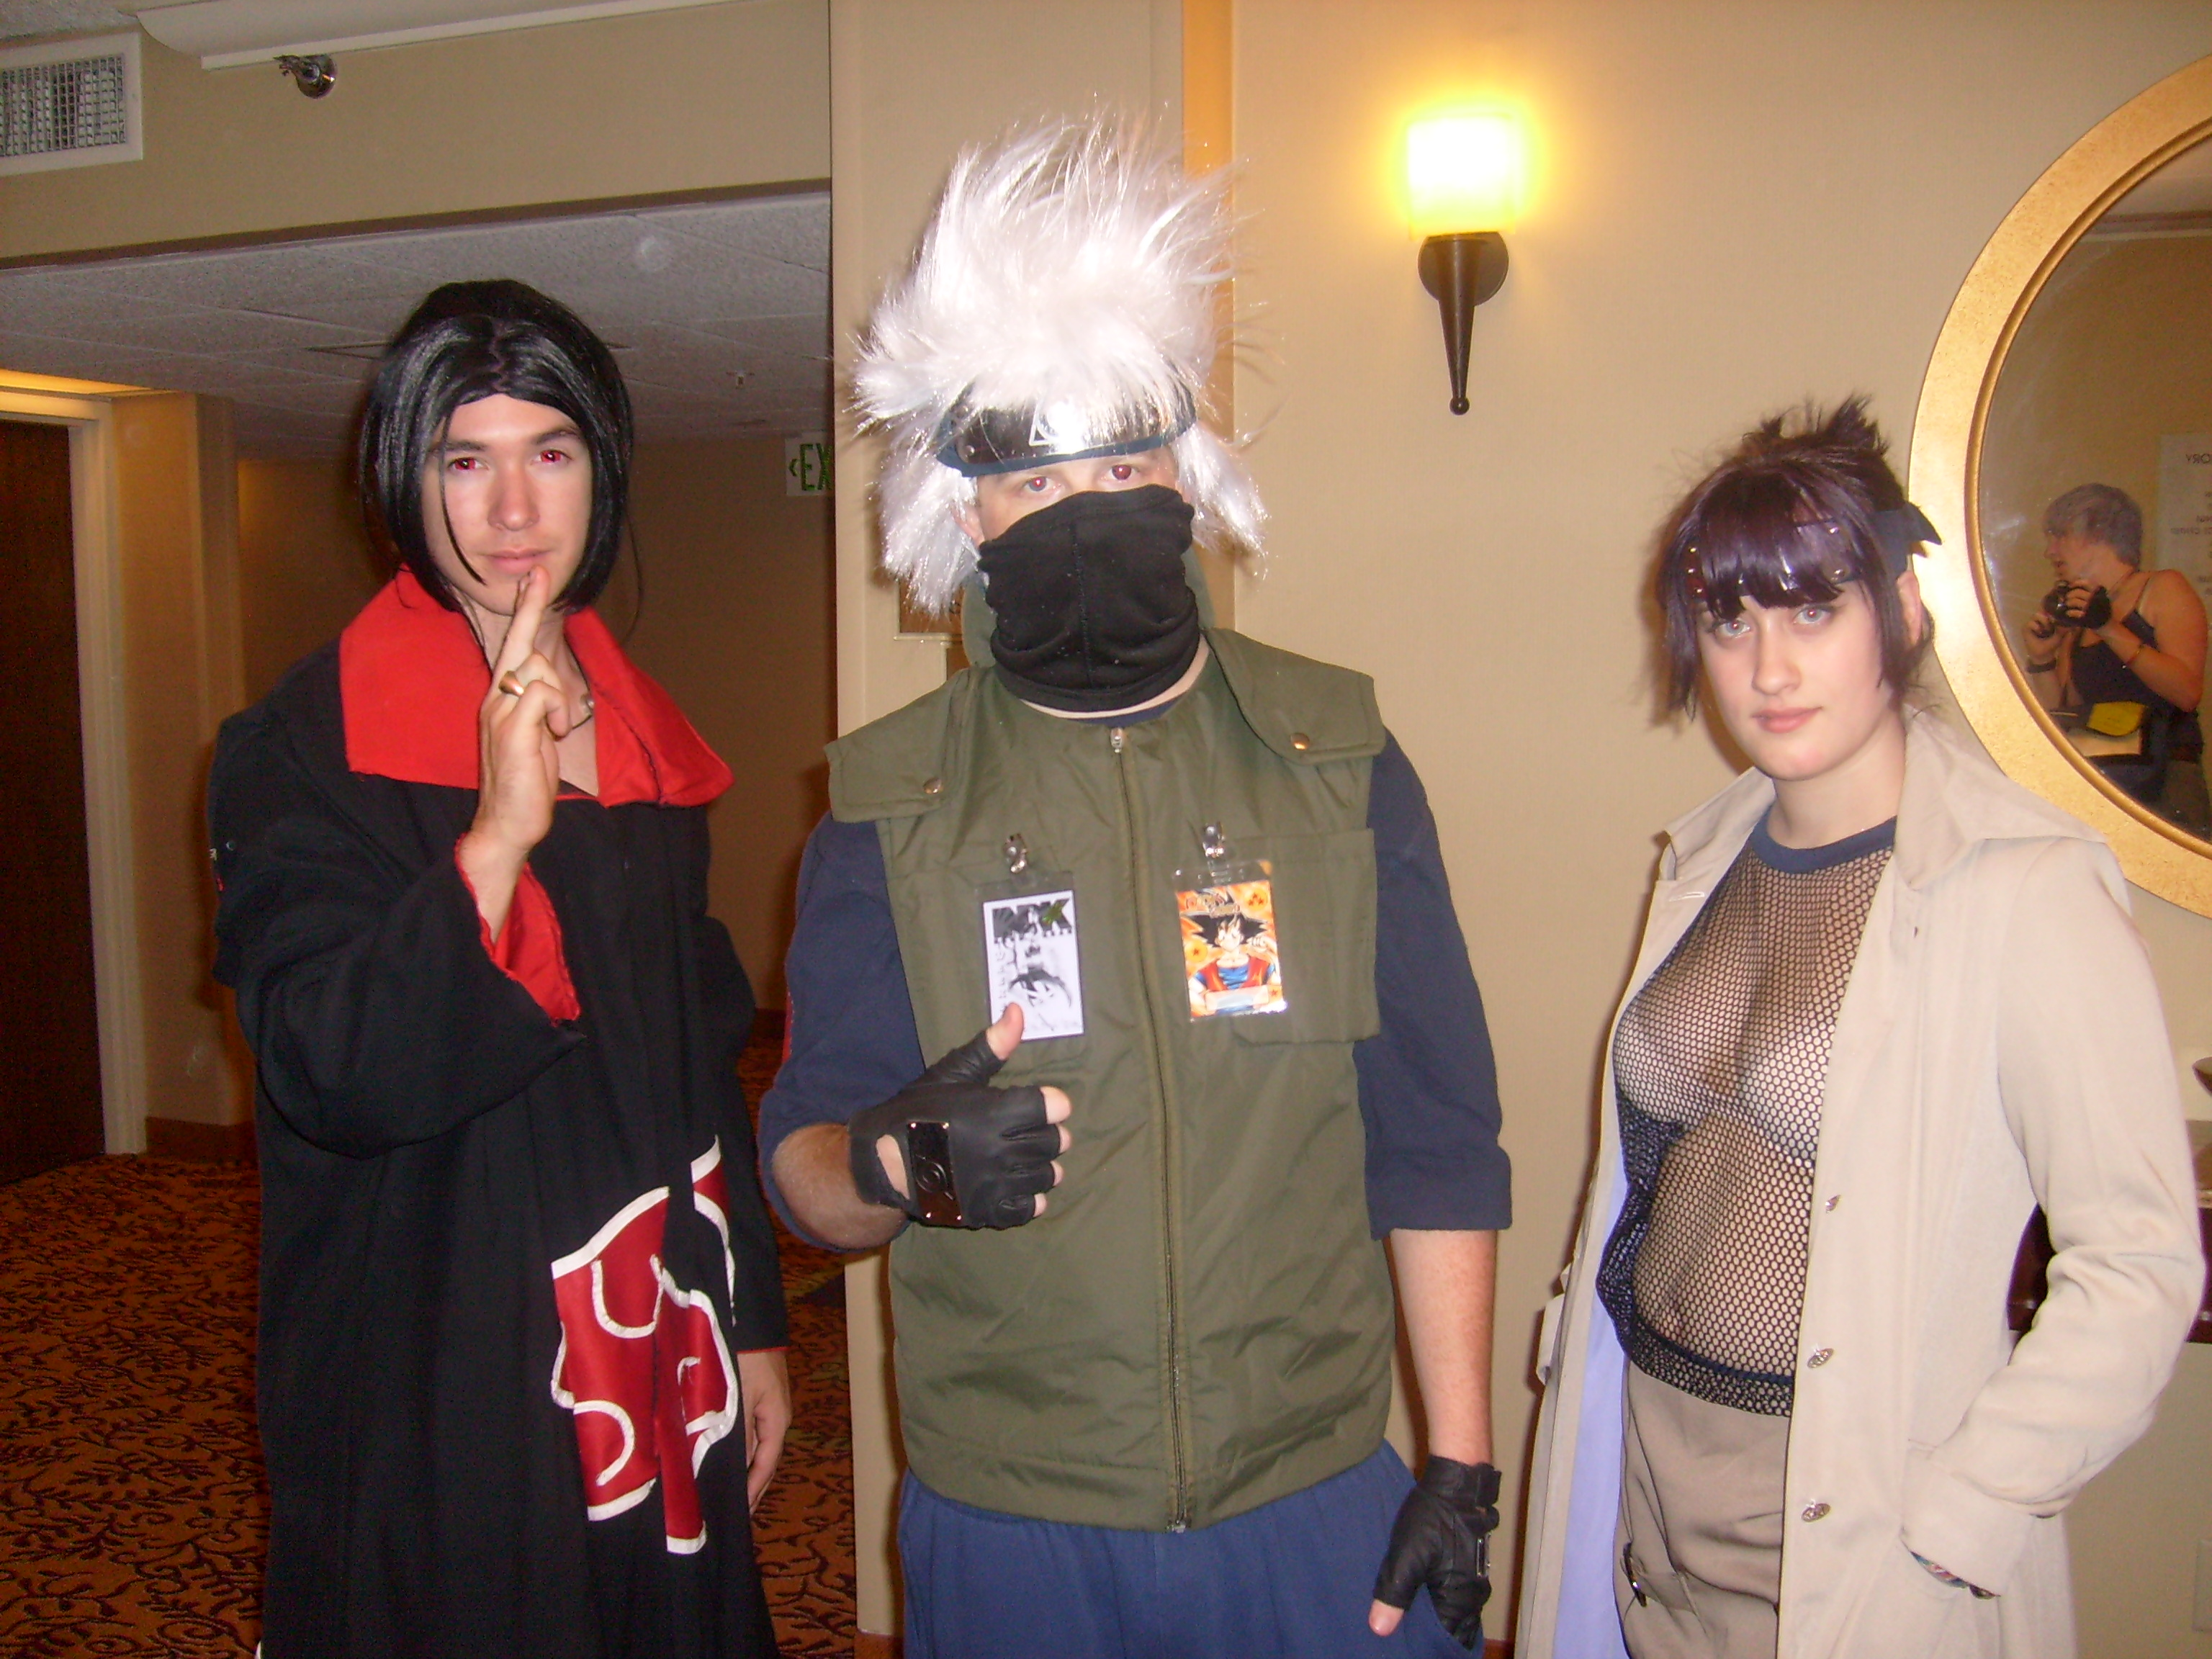 Not anorexic, Naruto cosplay sex the